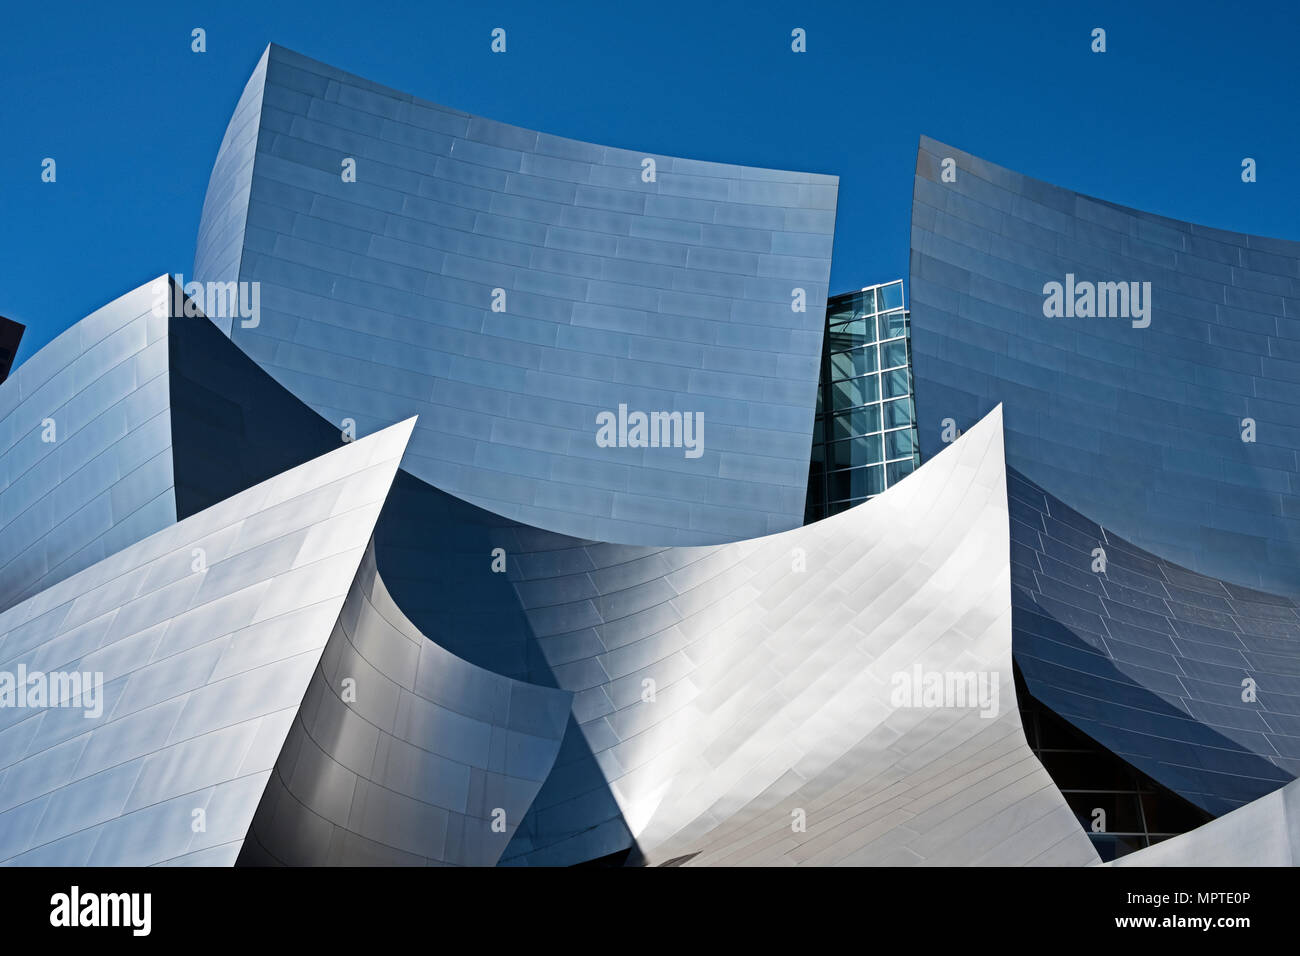 LOS ANGELES, USA - MARCH 5, 2018: The Walt Disney Philharmonic Concert Hall, designed by Frank Gehry is a modern architecture landmark in Los Angeles. Stock Photo